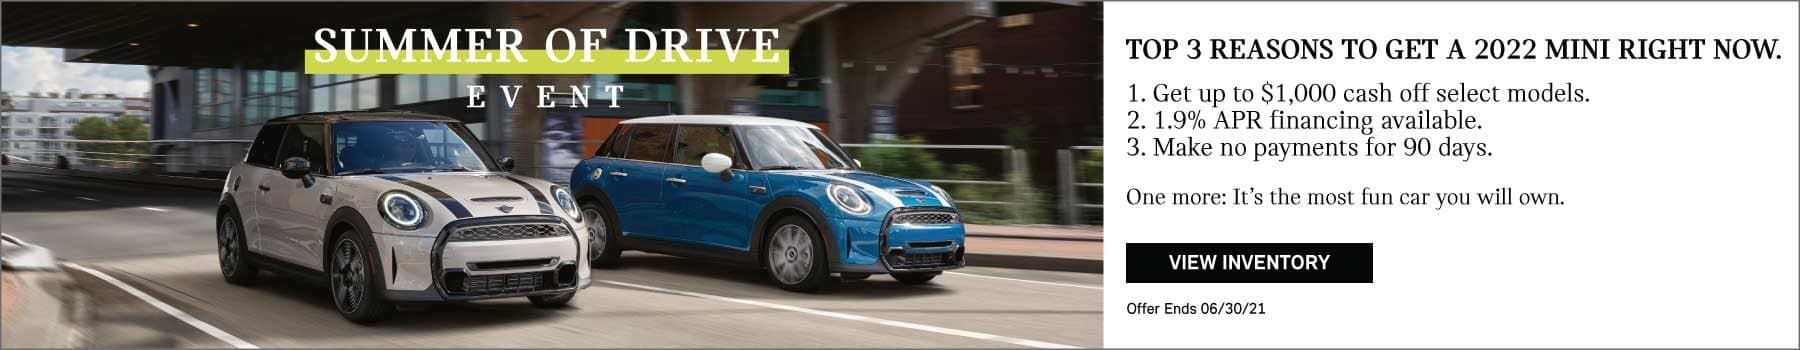 Top 3 Reasons to Get a 2022 MINI Right Now- 1. Get up to $1,000 cash off select models 2. 1.9% APR financing available 3. No payments for 90 days. One more- Its the best car you will ever own.